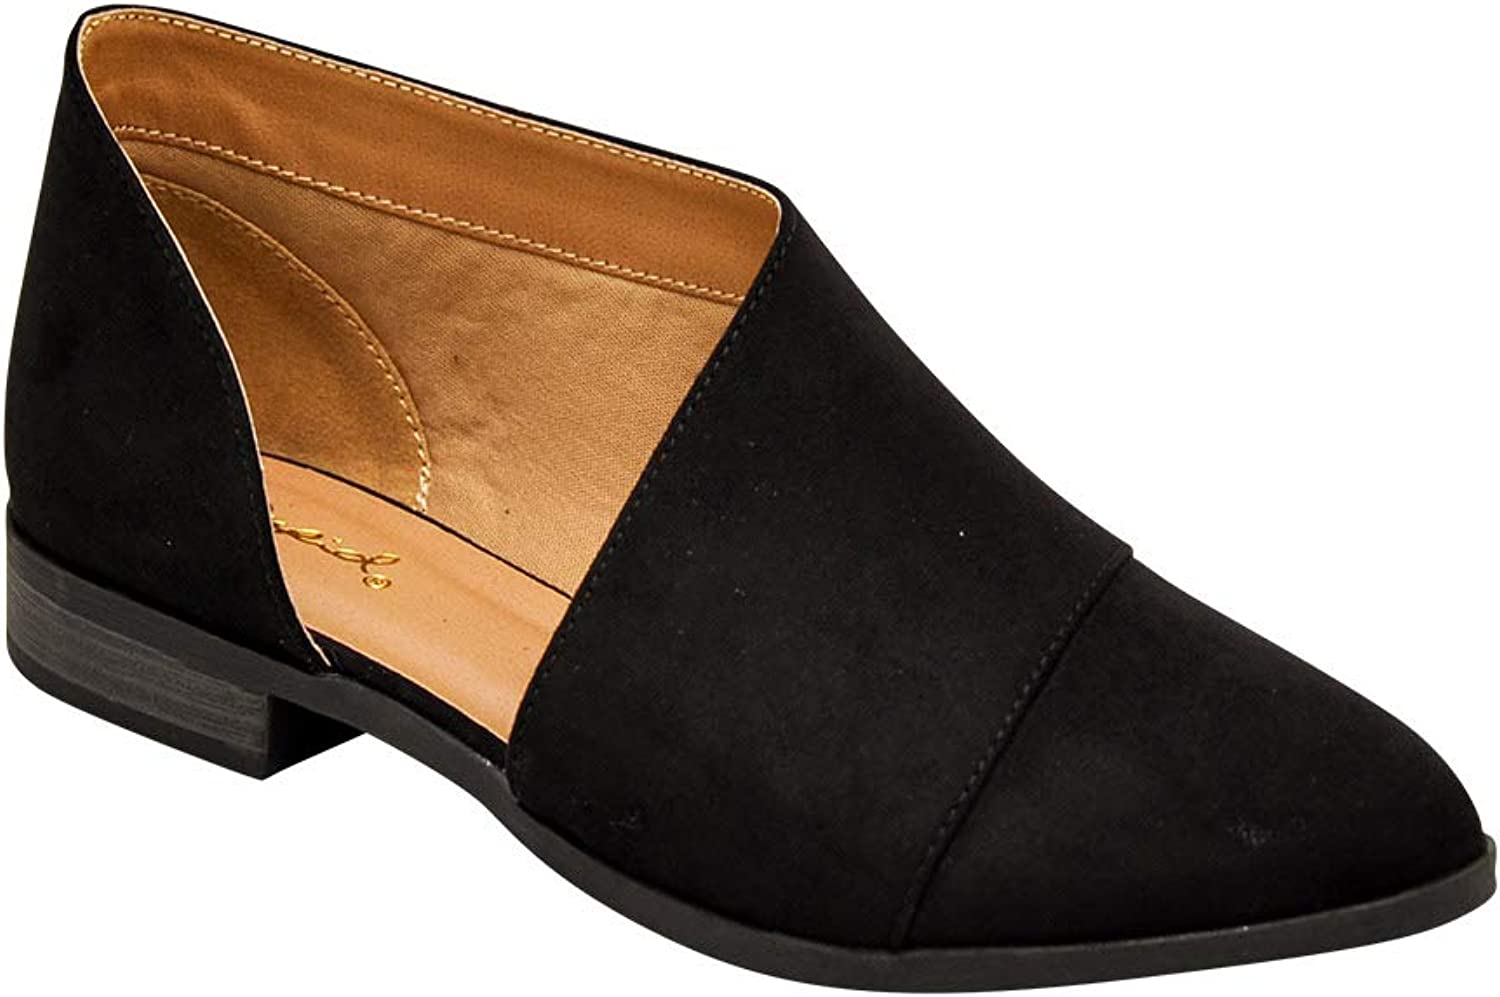 Qupid TUXEDO 68  Black Suede Women/'s D/'Orsay Closed Toe Ankle Booties